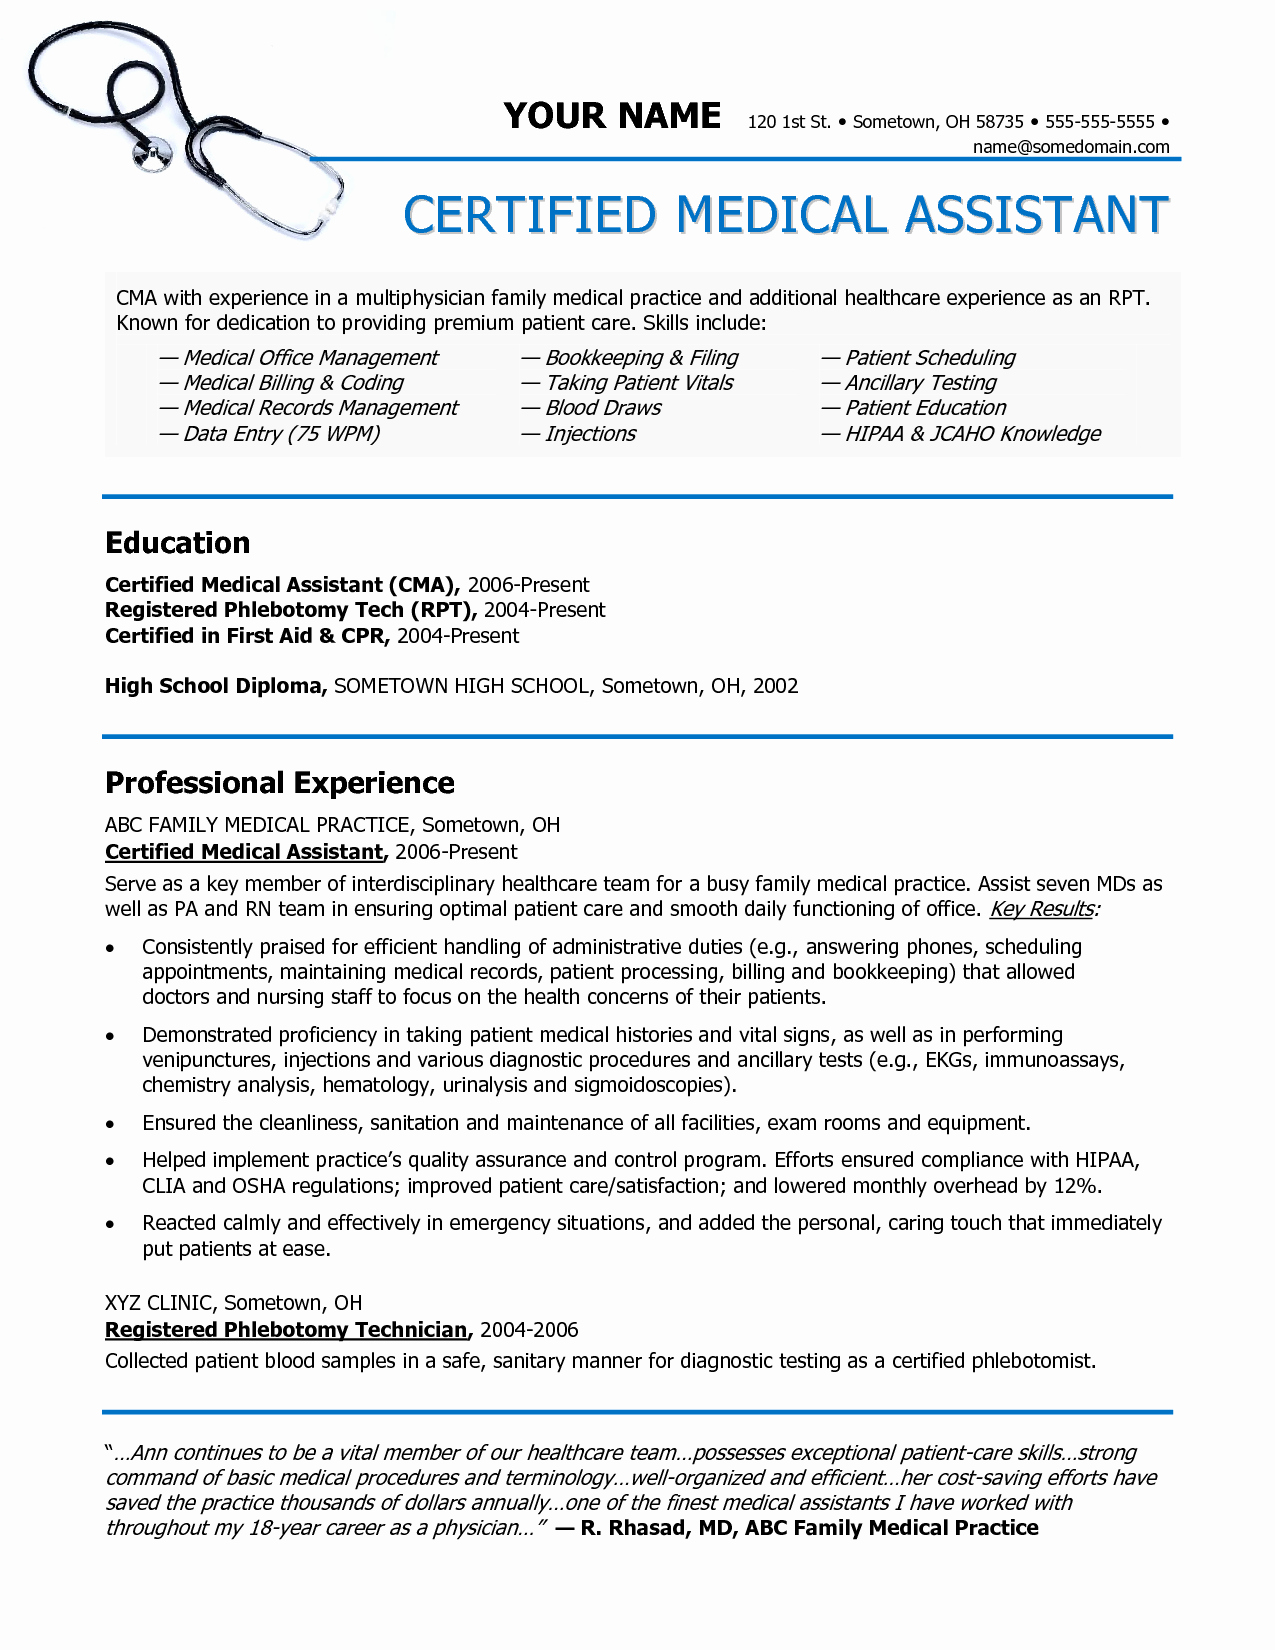 Medical assistant Resume Entry Level Examples 18 Medical